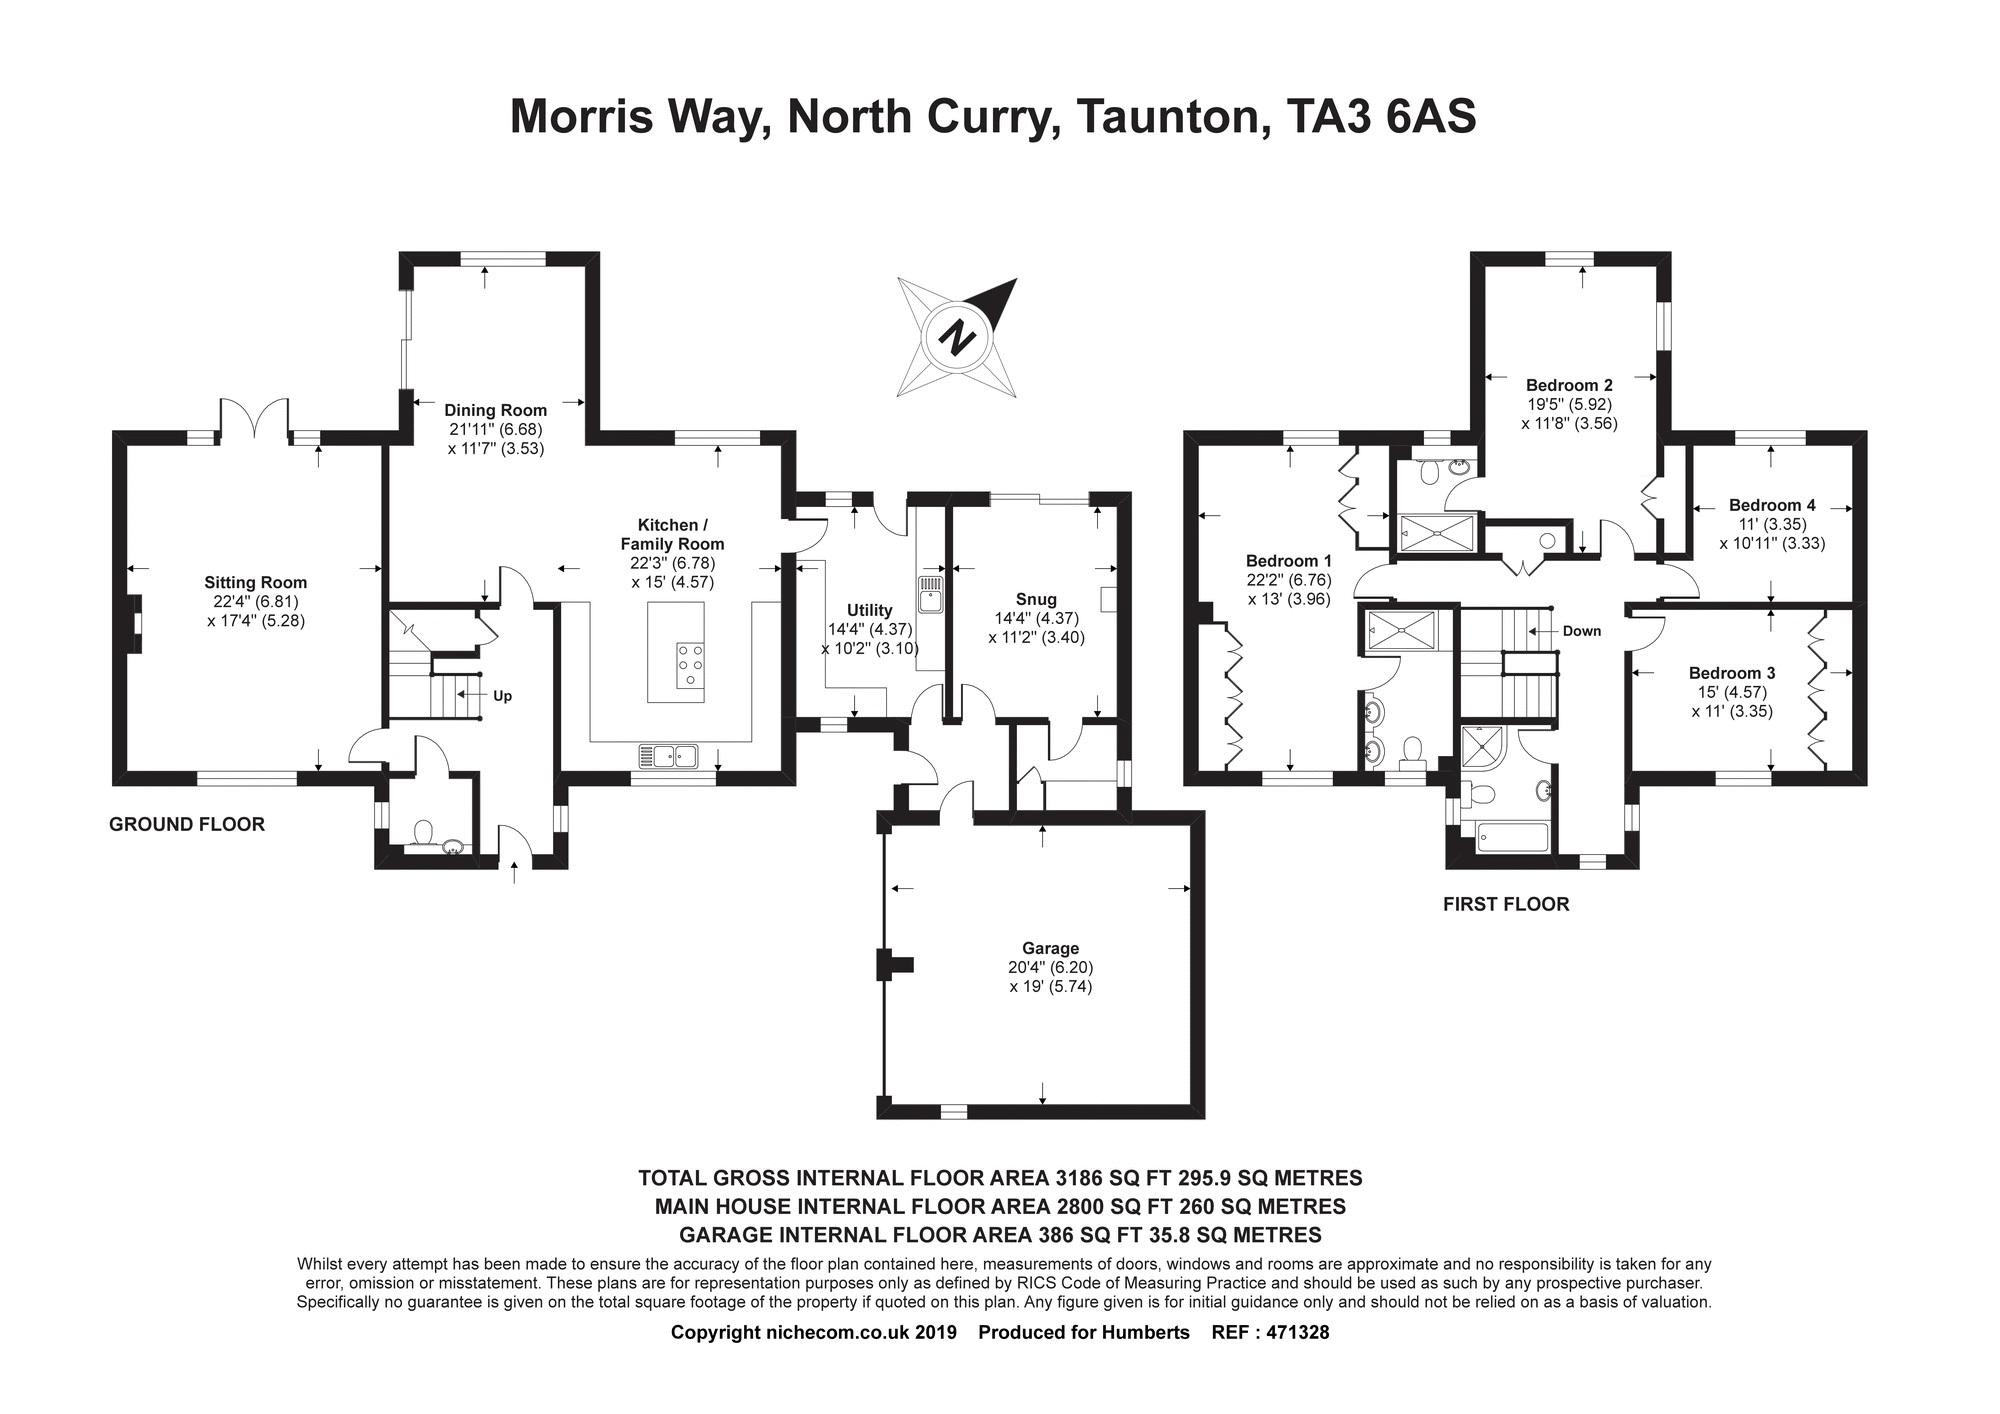 Morris Way North Curry